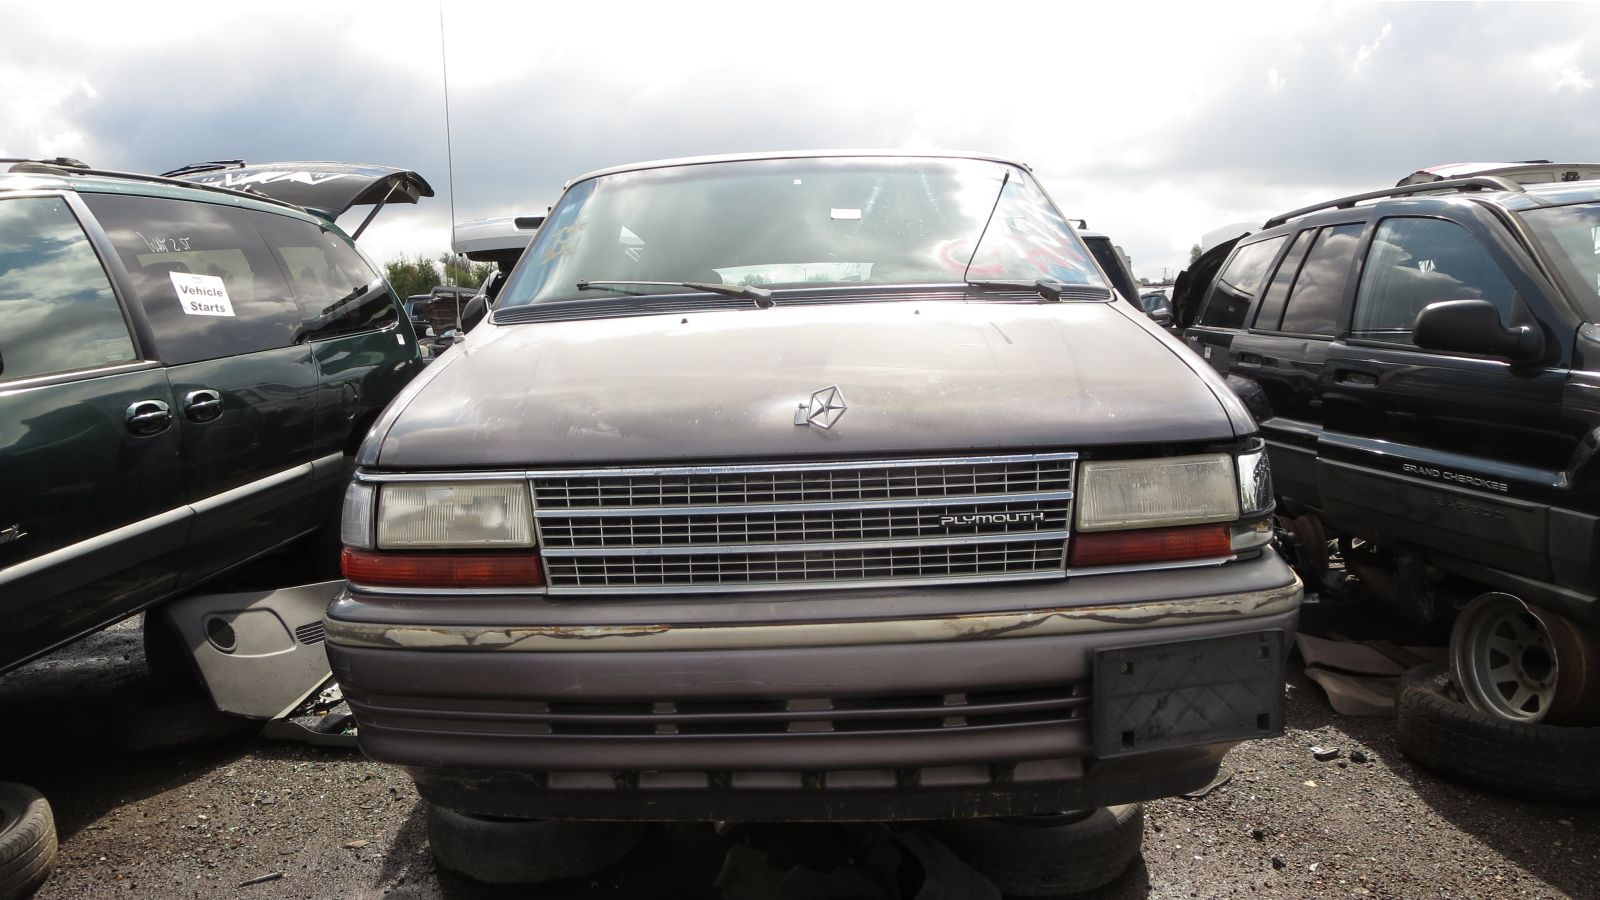 Plymouth voyager photo - 3